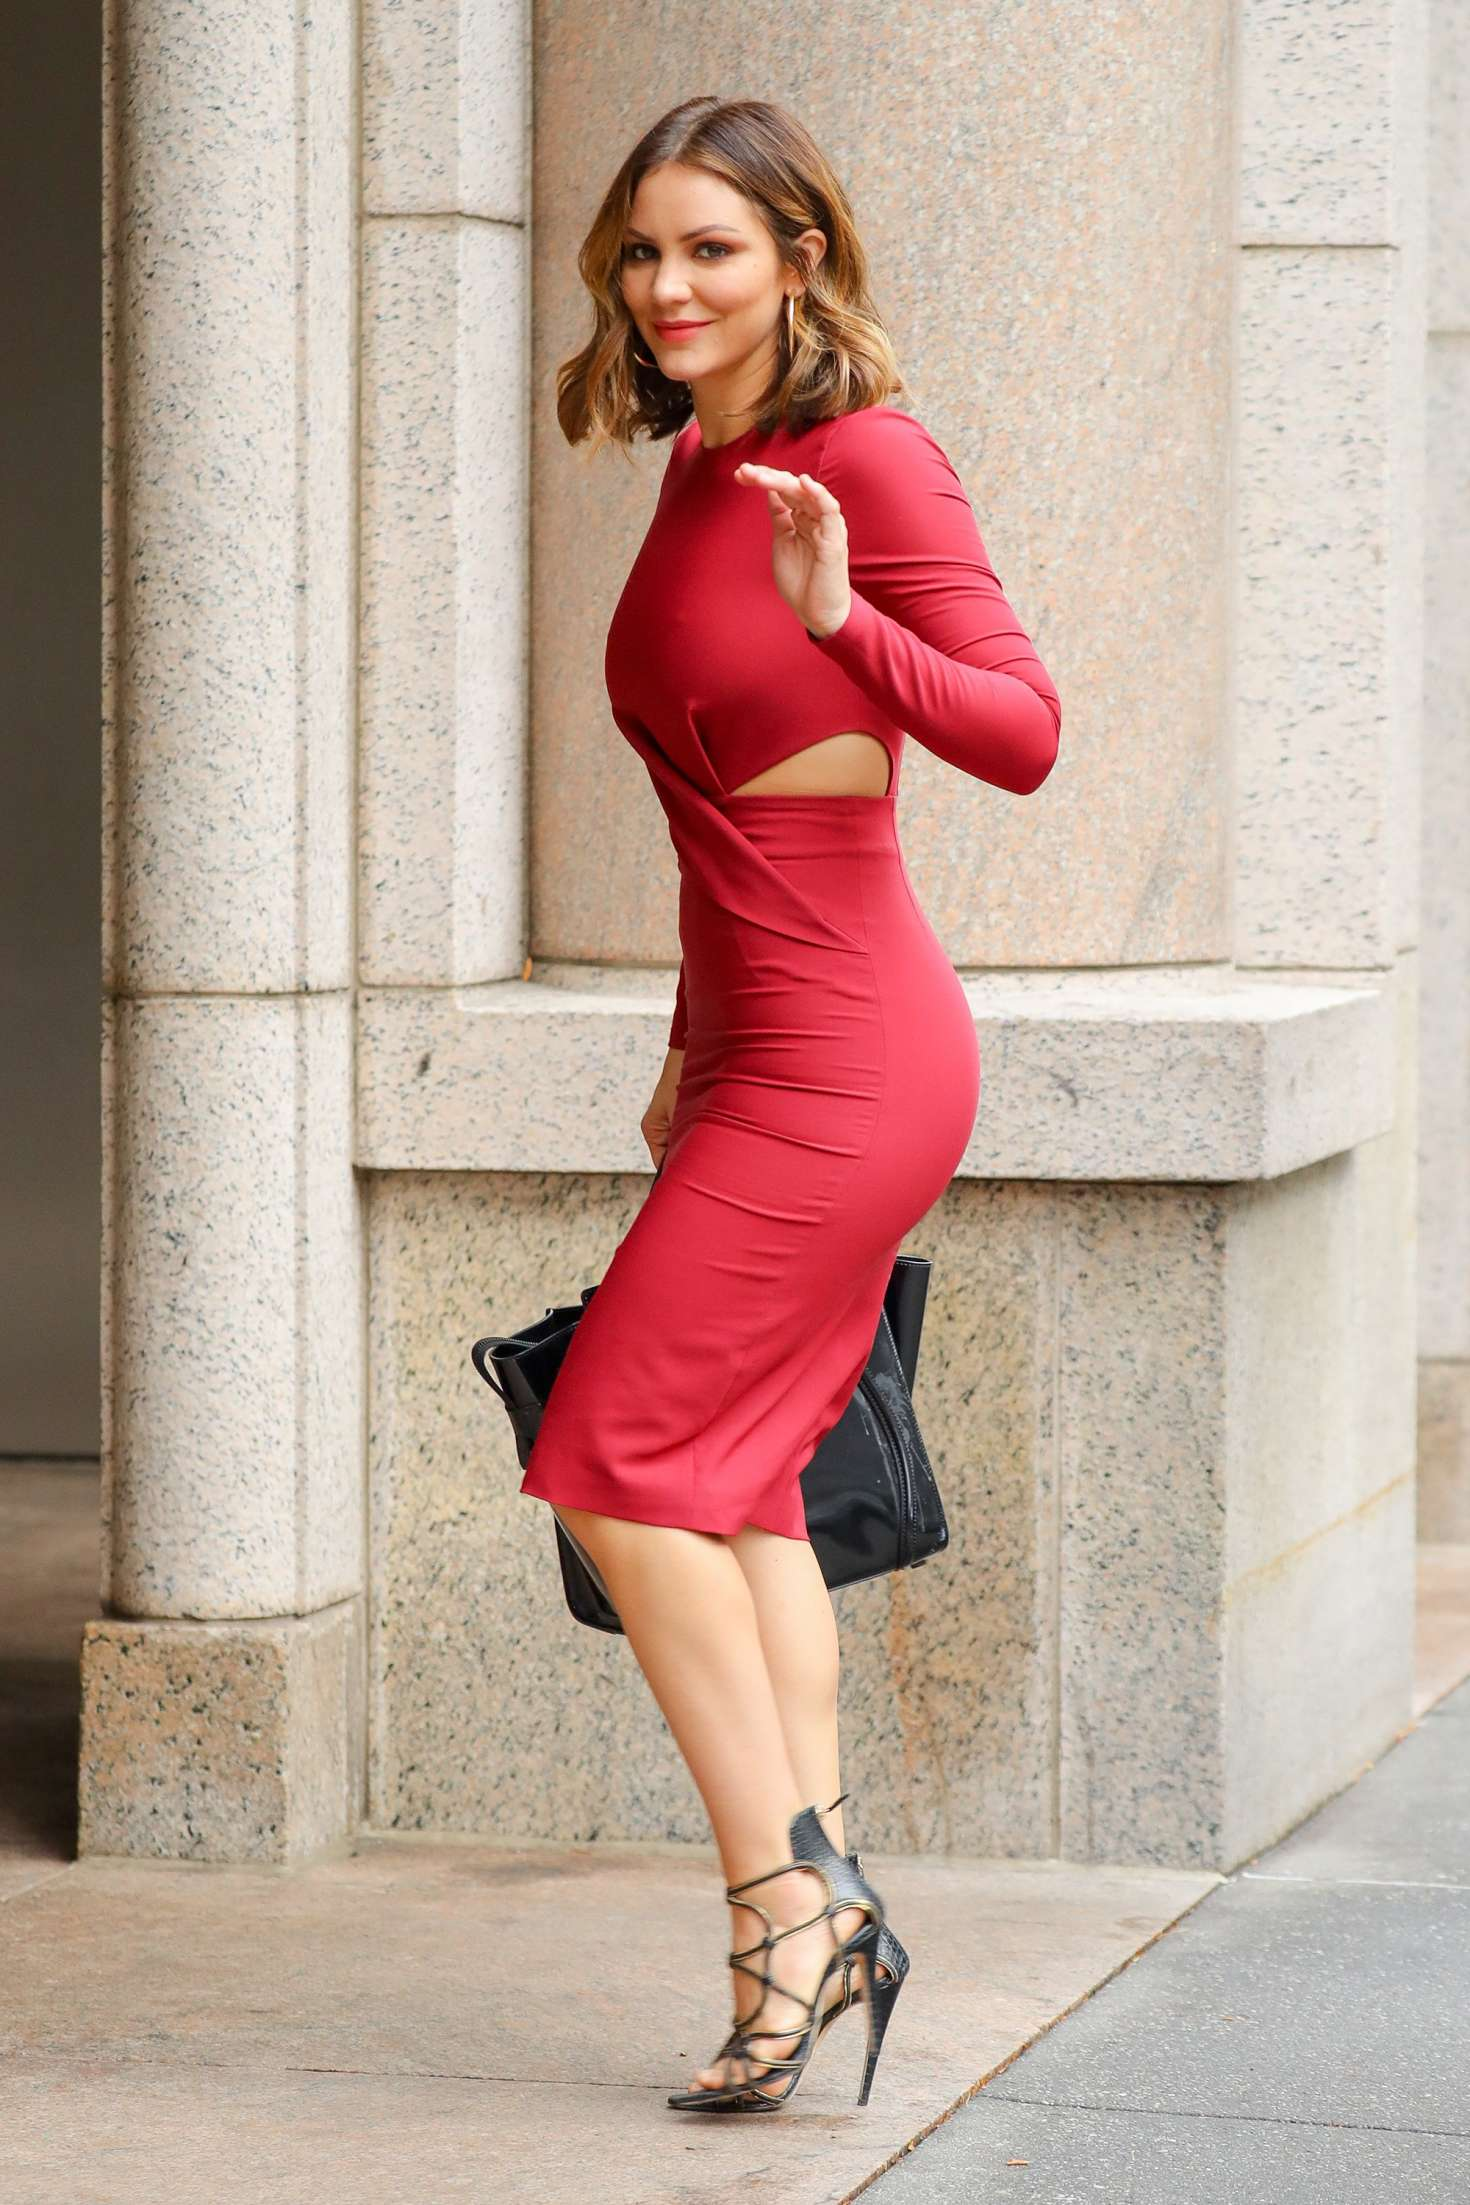 Katharine McPhee in Red Dress at ABC Studios in New York ...